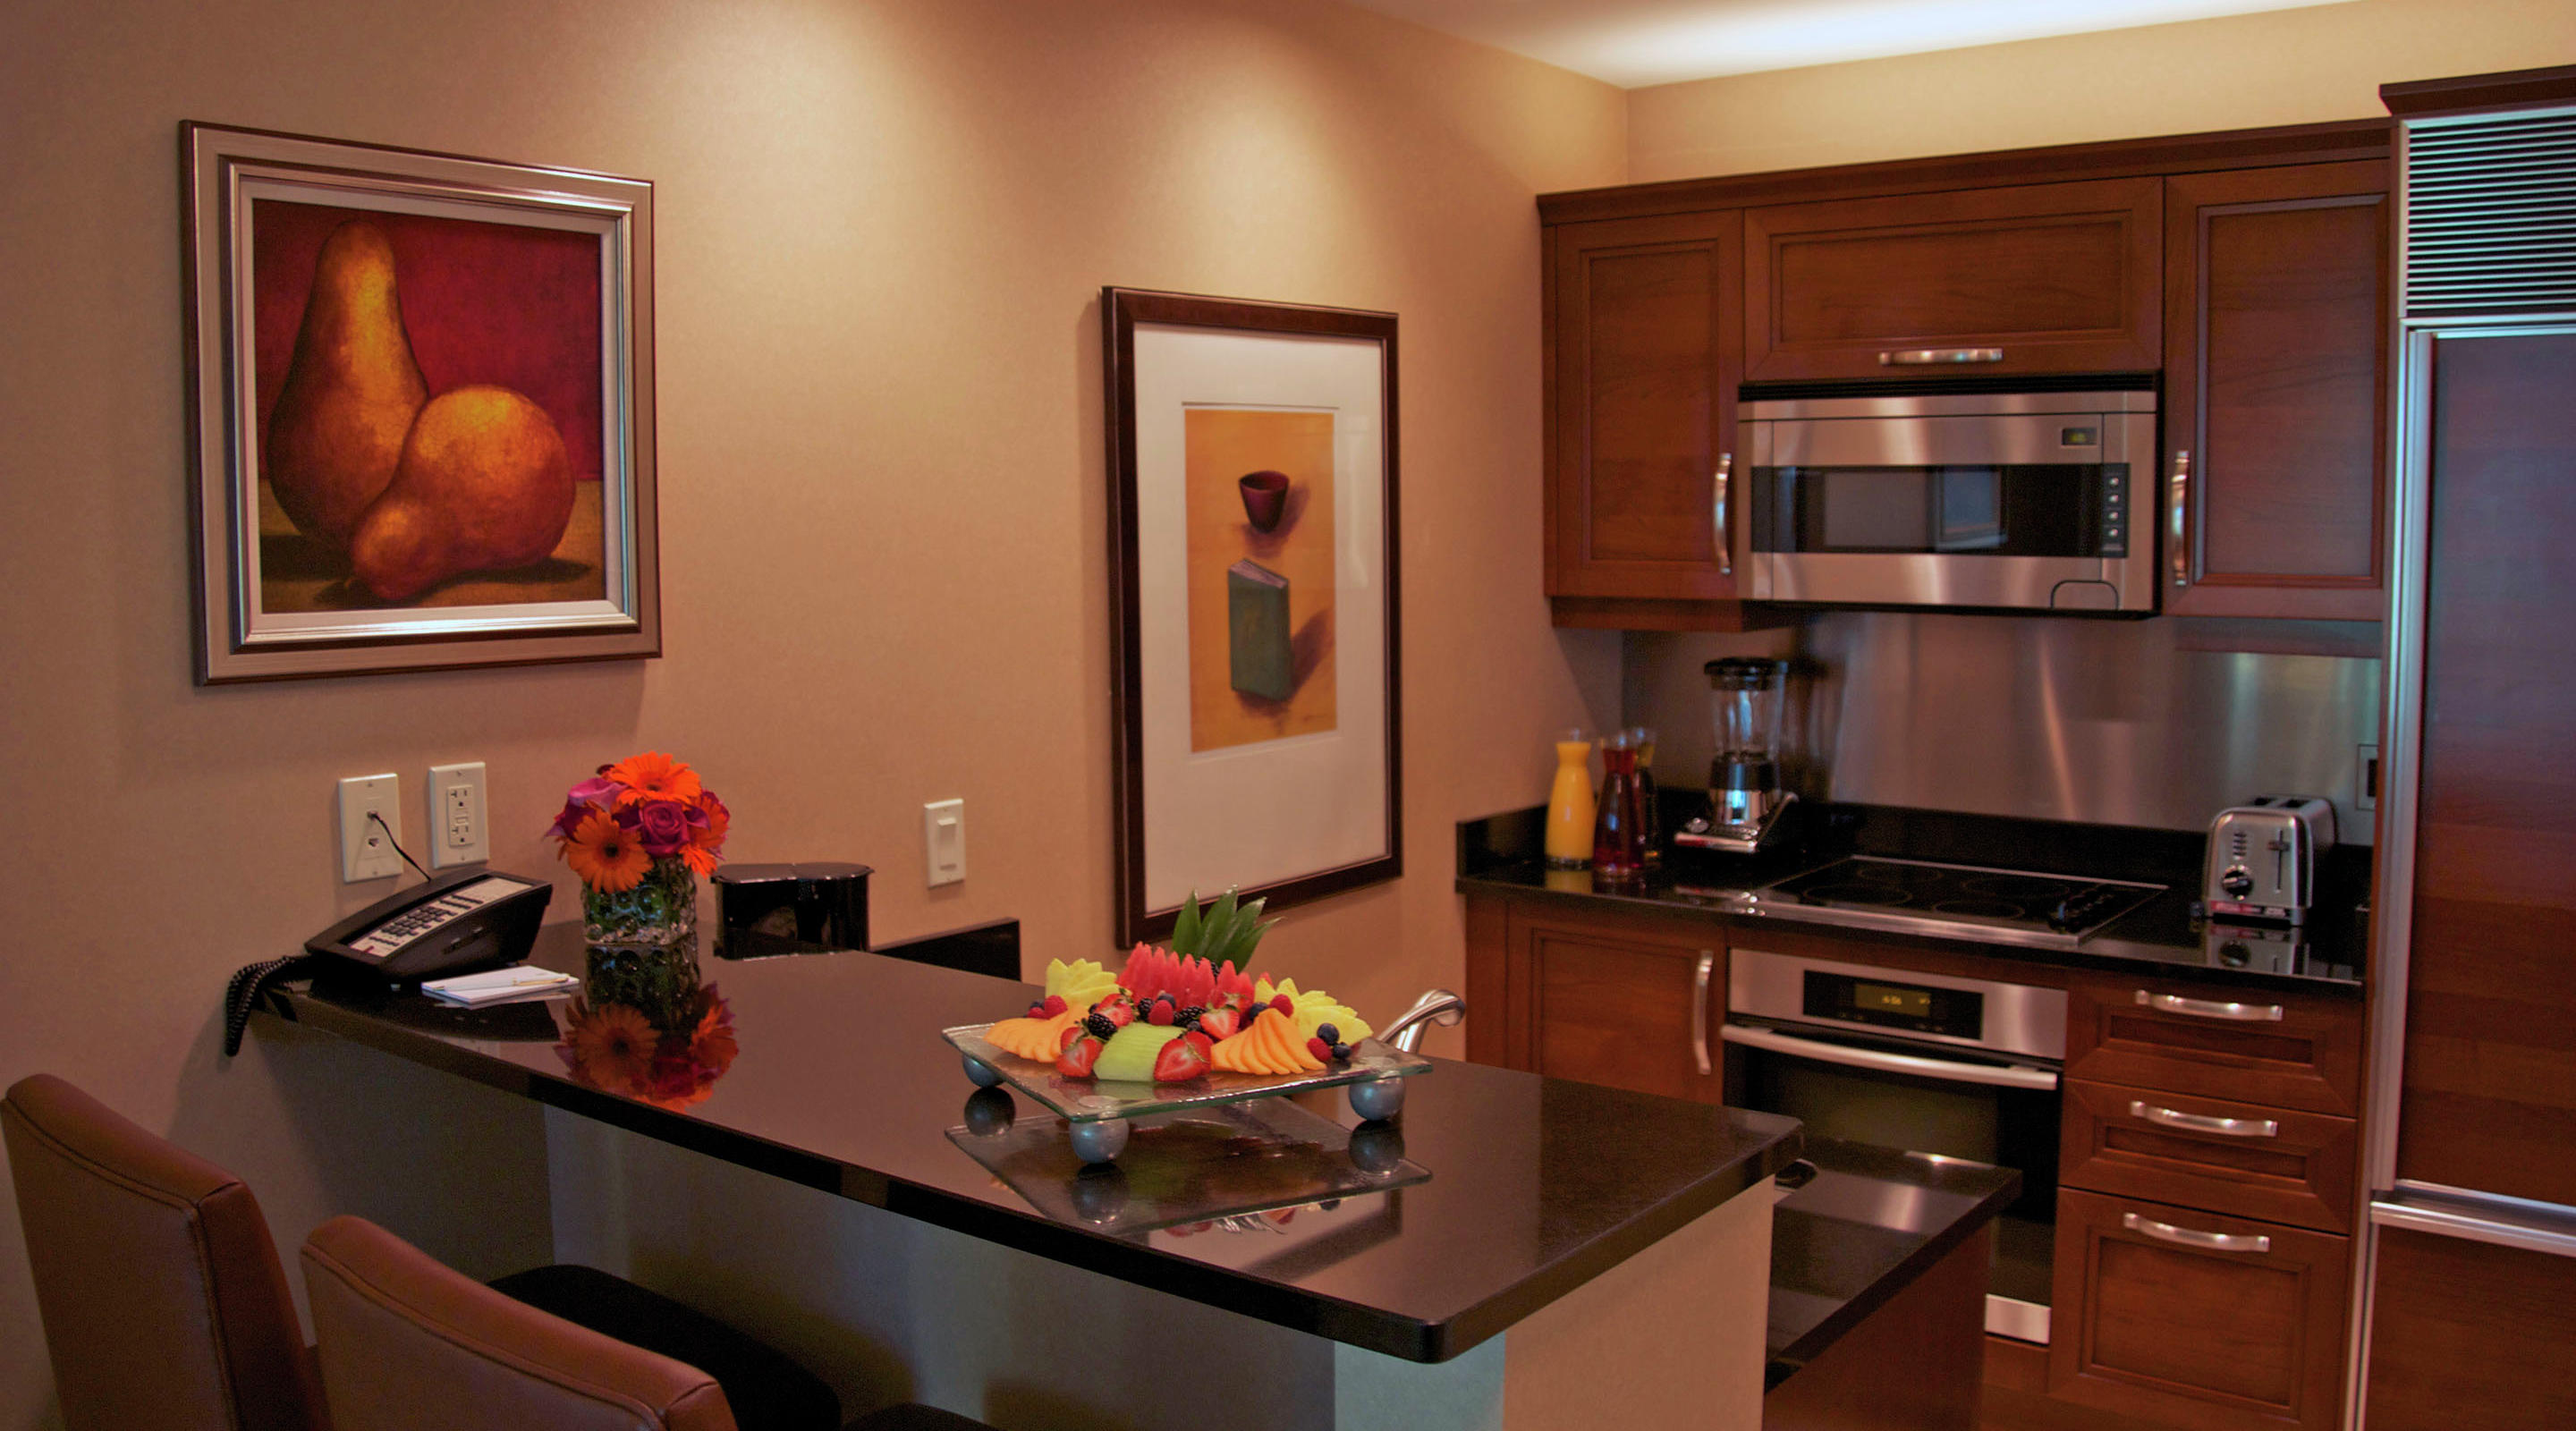 Signature Two Bedroom Balcony Suite Kitchenette with Fruit and Flowers